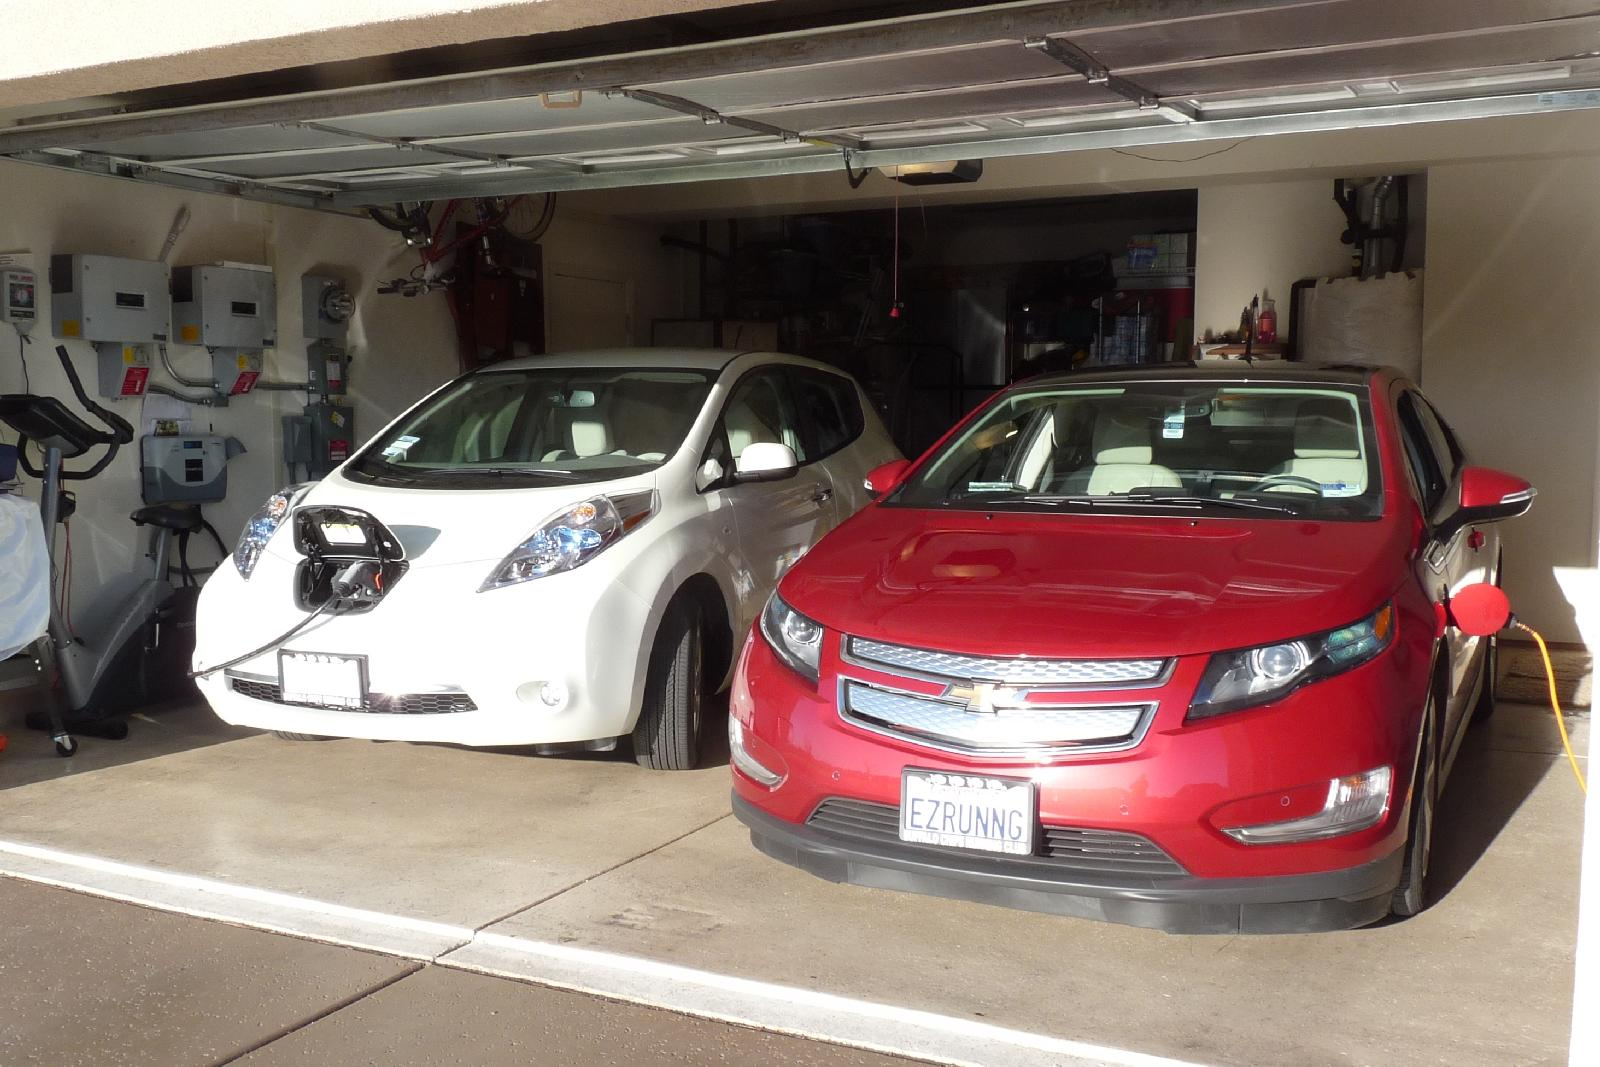 2011 Nissan Leaf Vs 2011 Chevy Volt: Strengths U0026 Weaknesses, By The Man Who  Owns Both